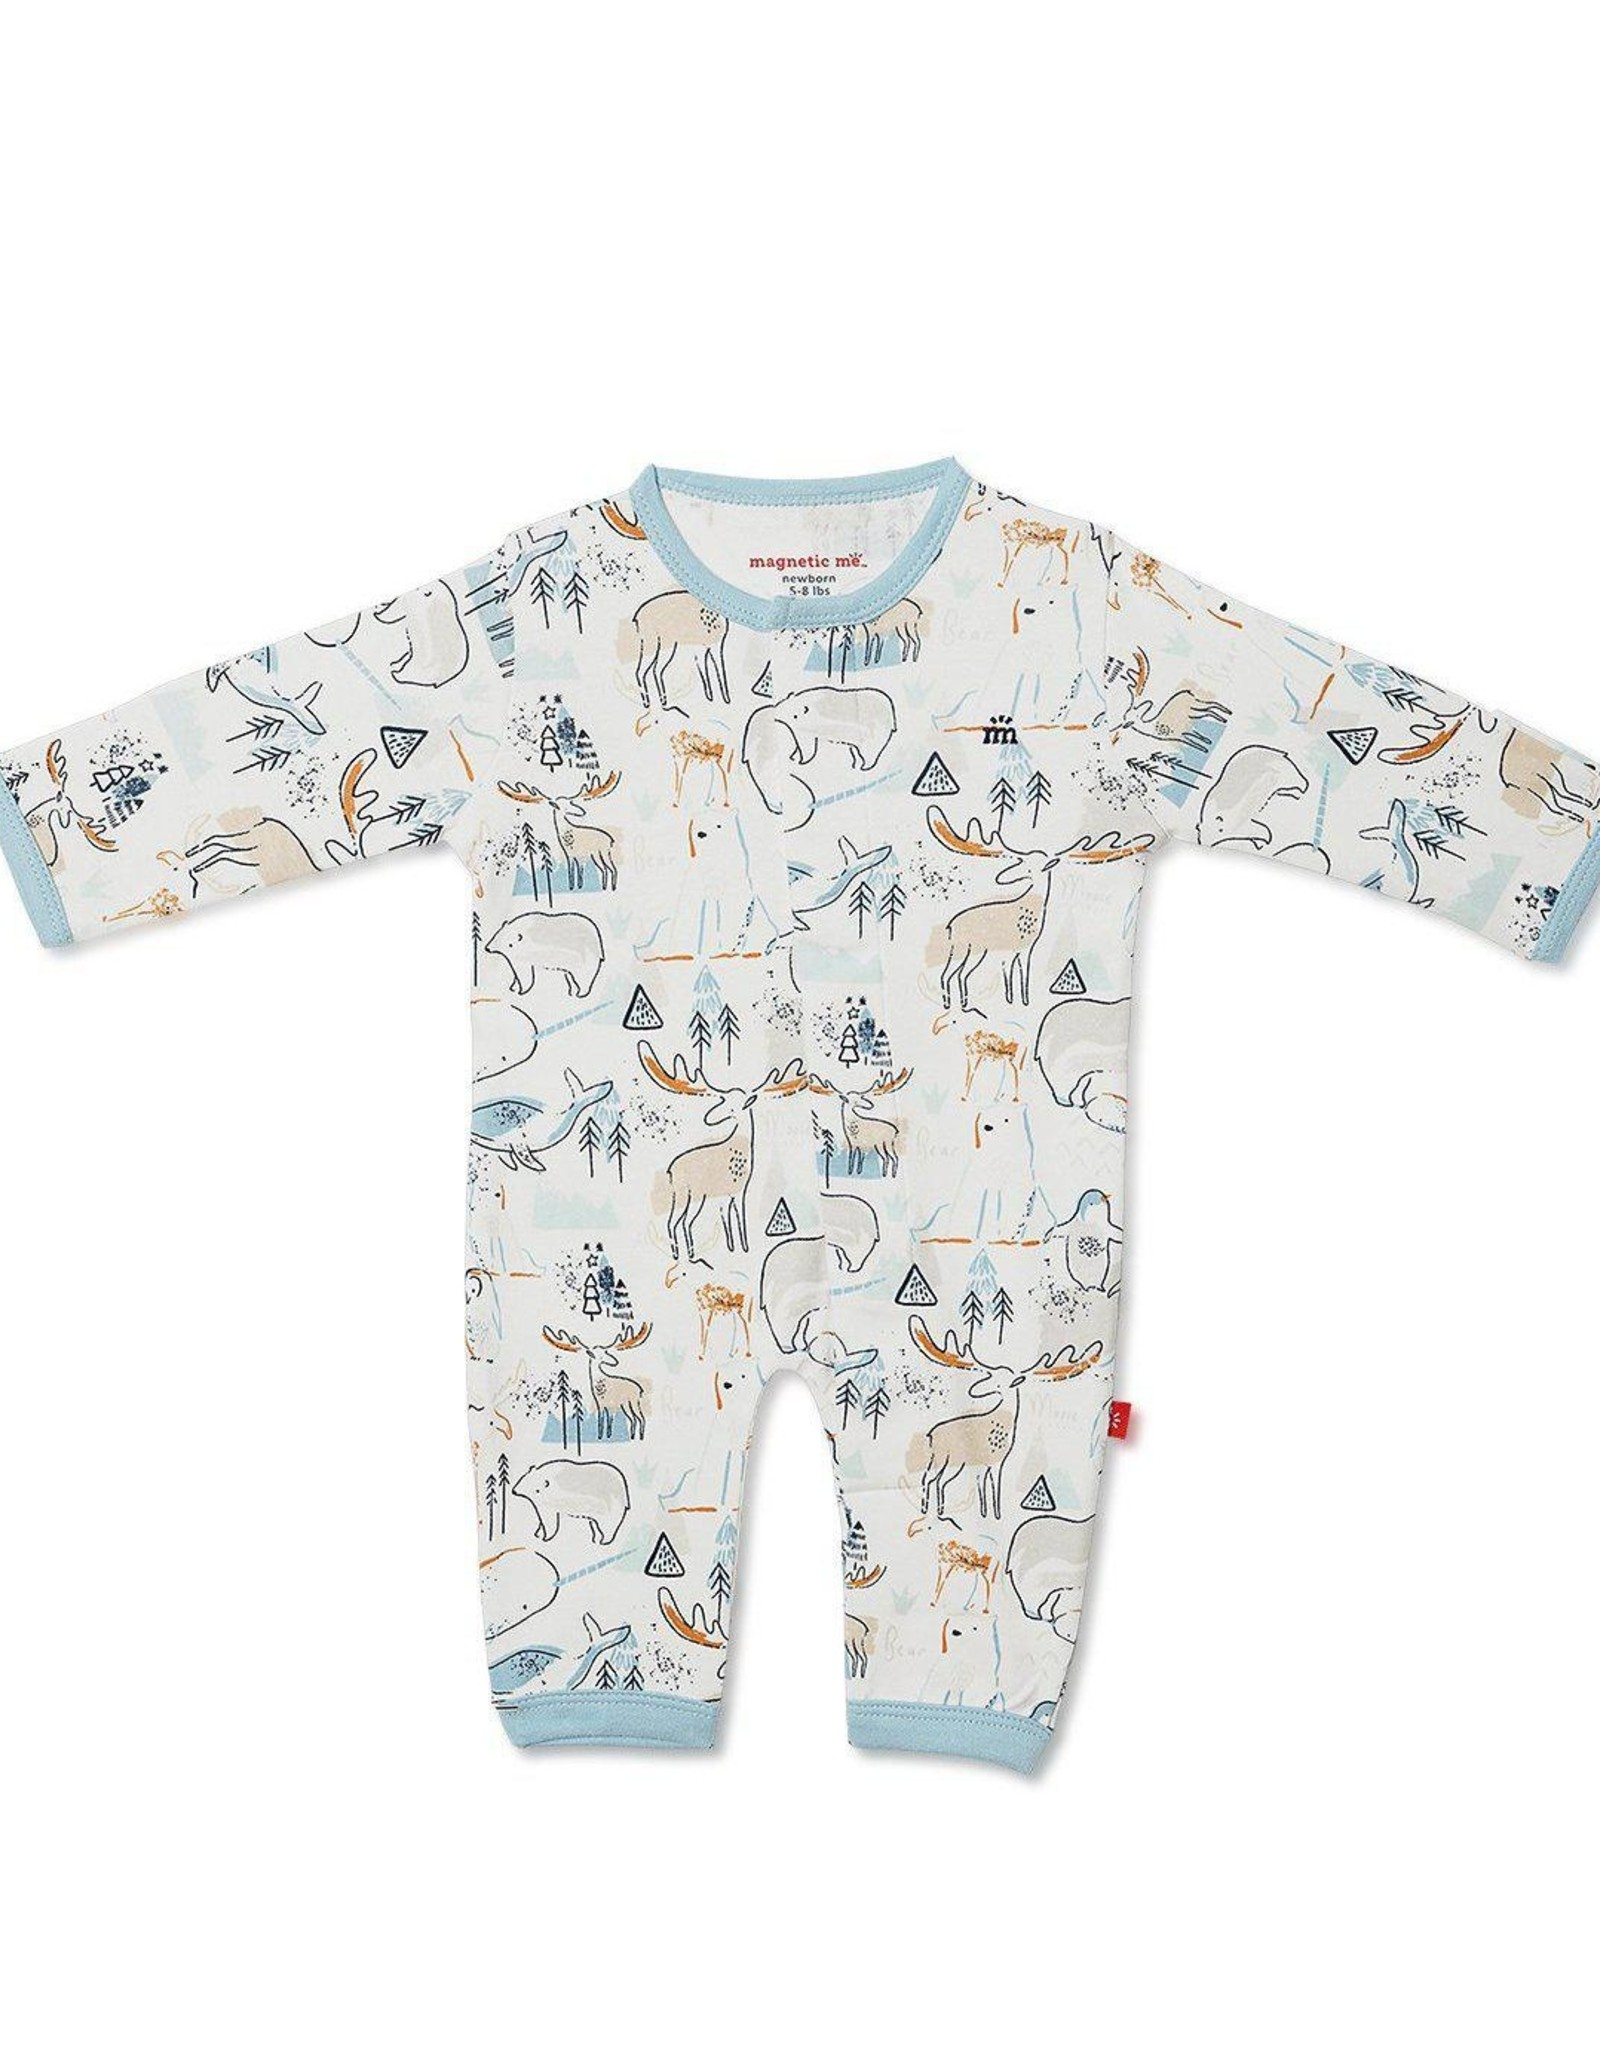 Magnetic Me Northern Lights Coverall - organic cotton, magnetic